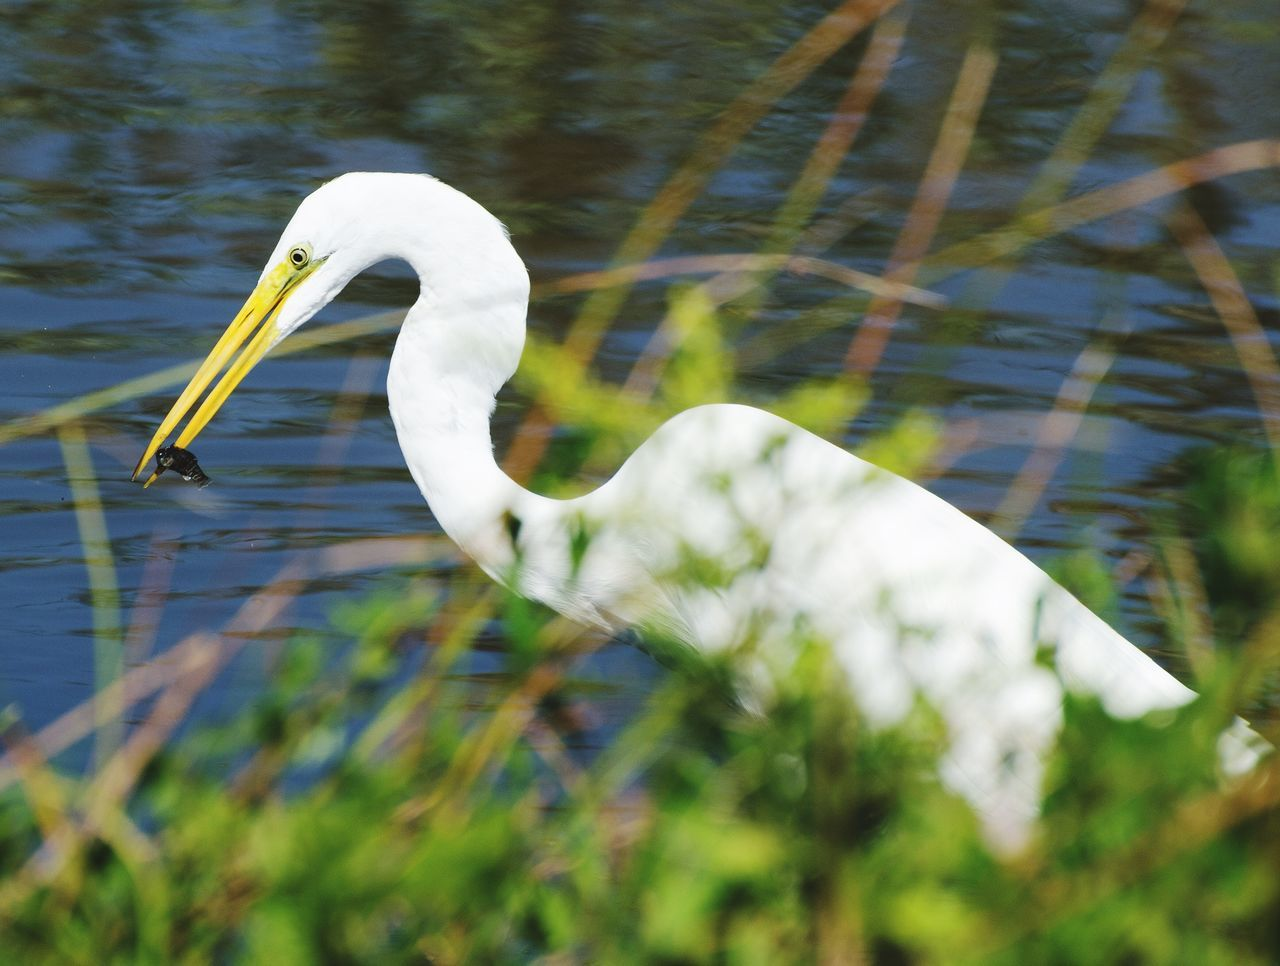 White Egret Bird Photography Ffish Mealtimes Water Bird Feeding Shore Bird United States South Carolina Outdoors